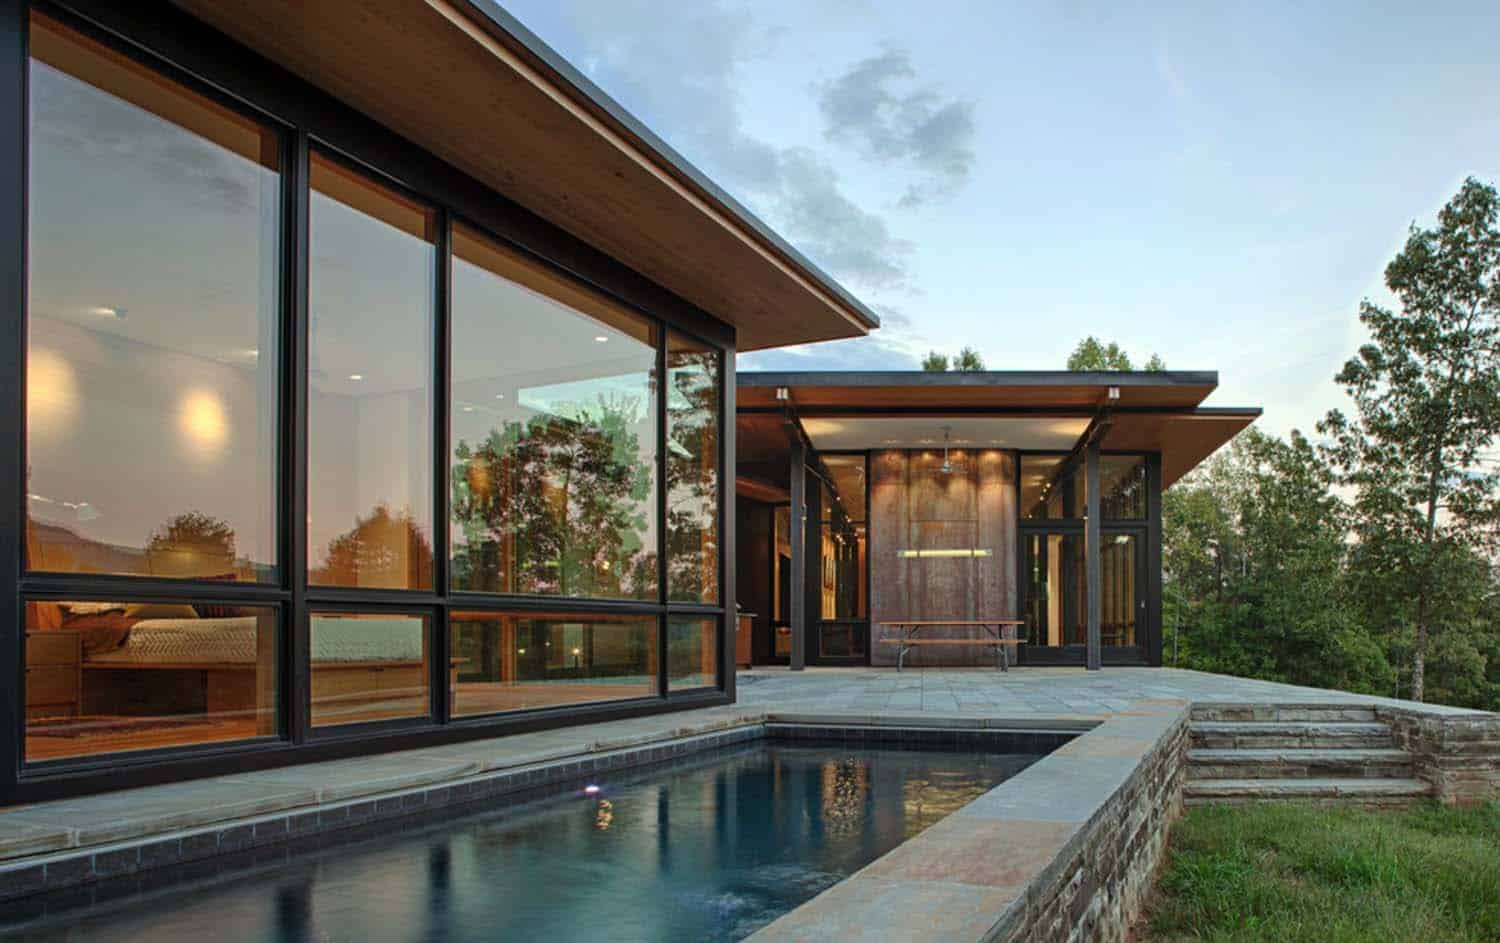 modern-lake-house-carlton-edwards-06-1-kindesign